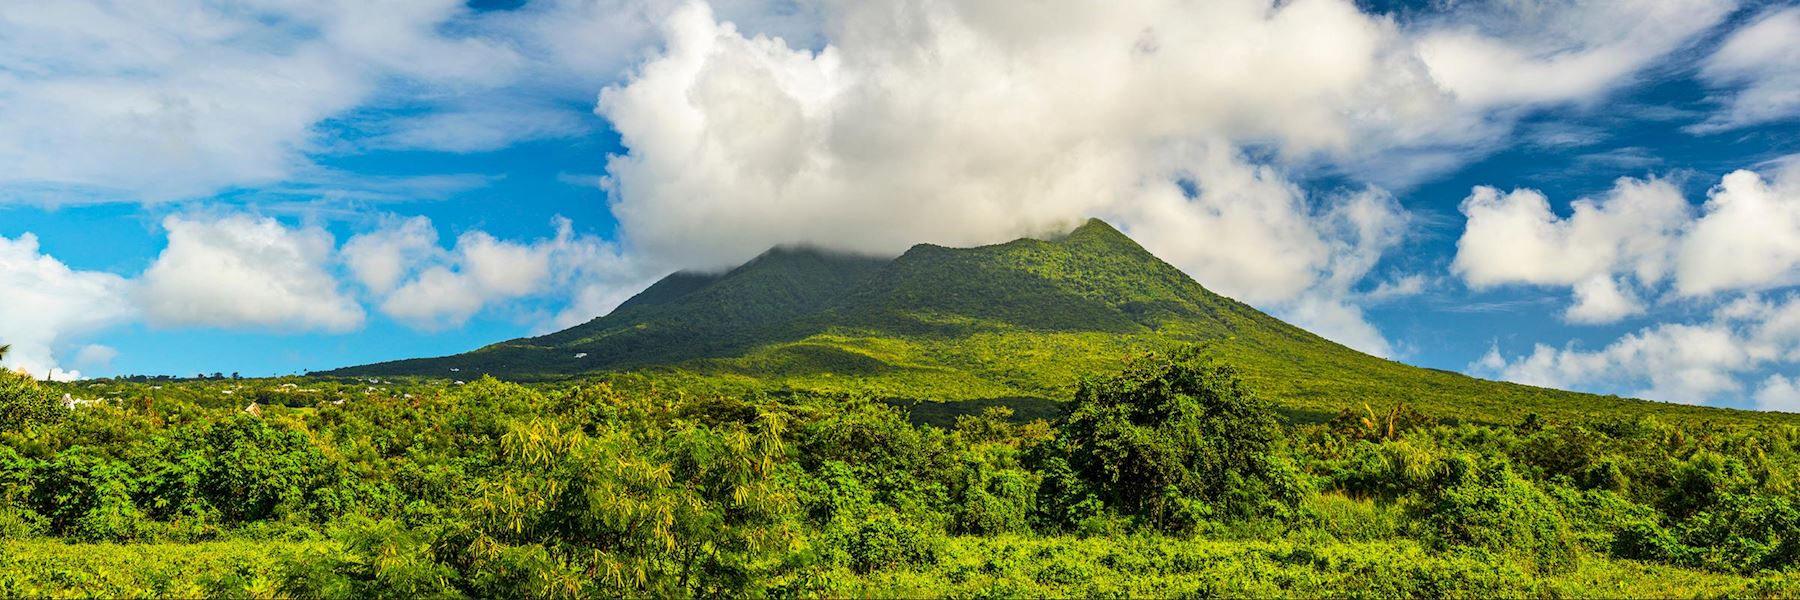 Places to visit in Saint Kitts and Nevis